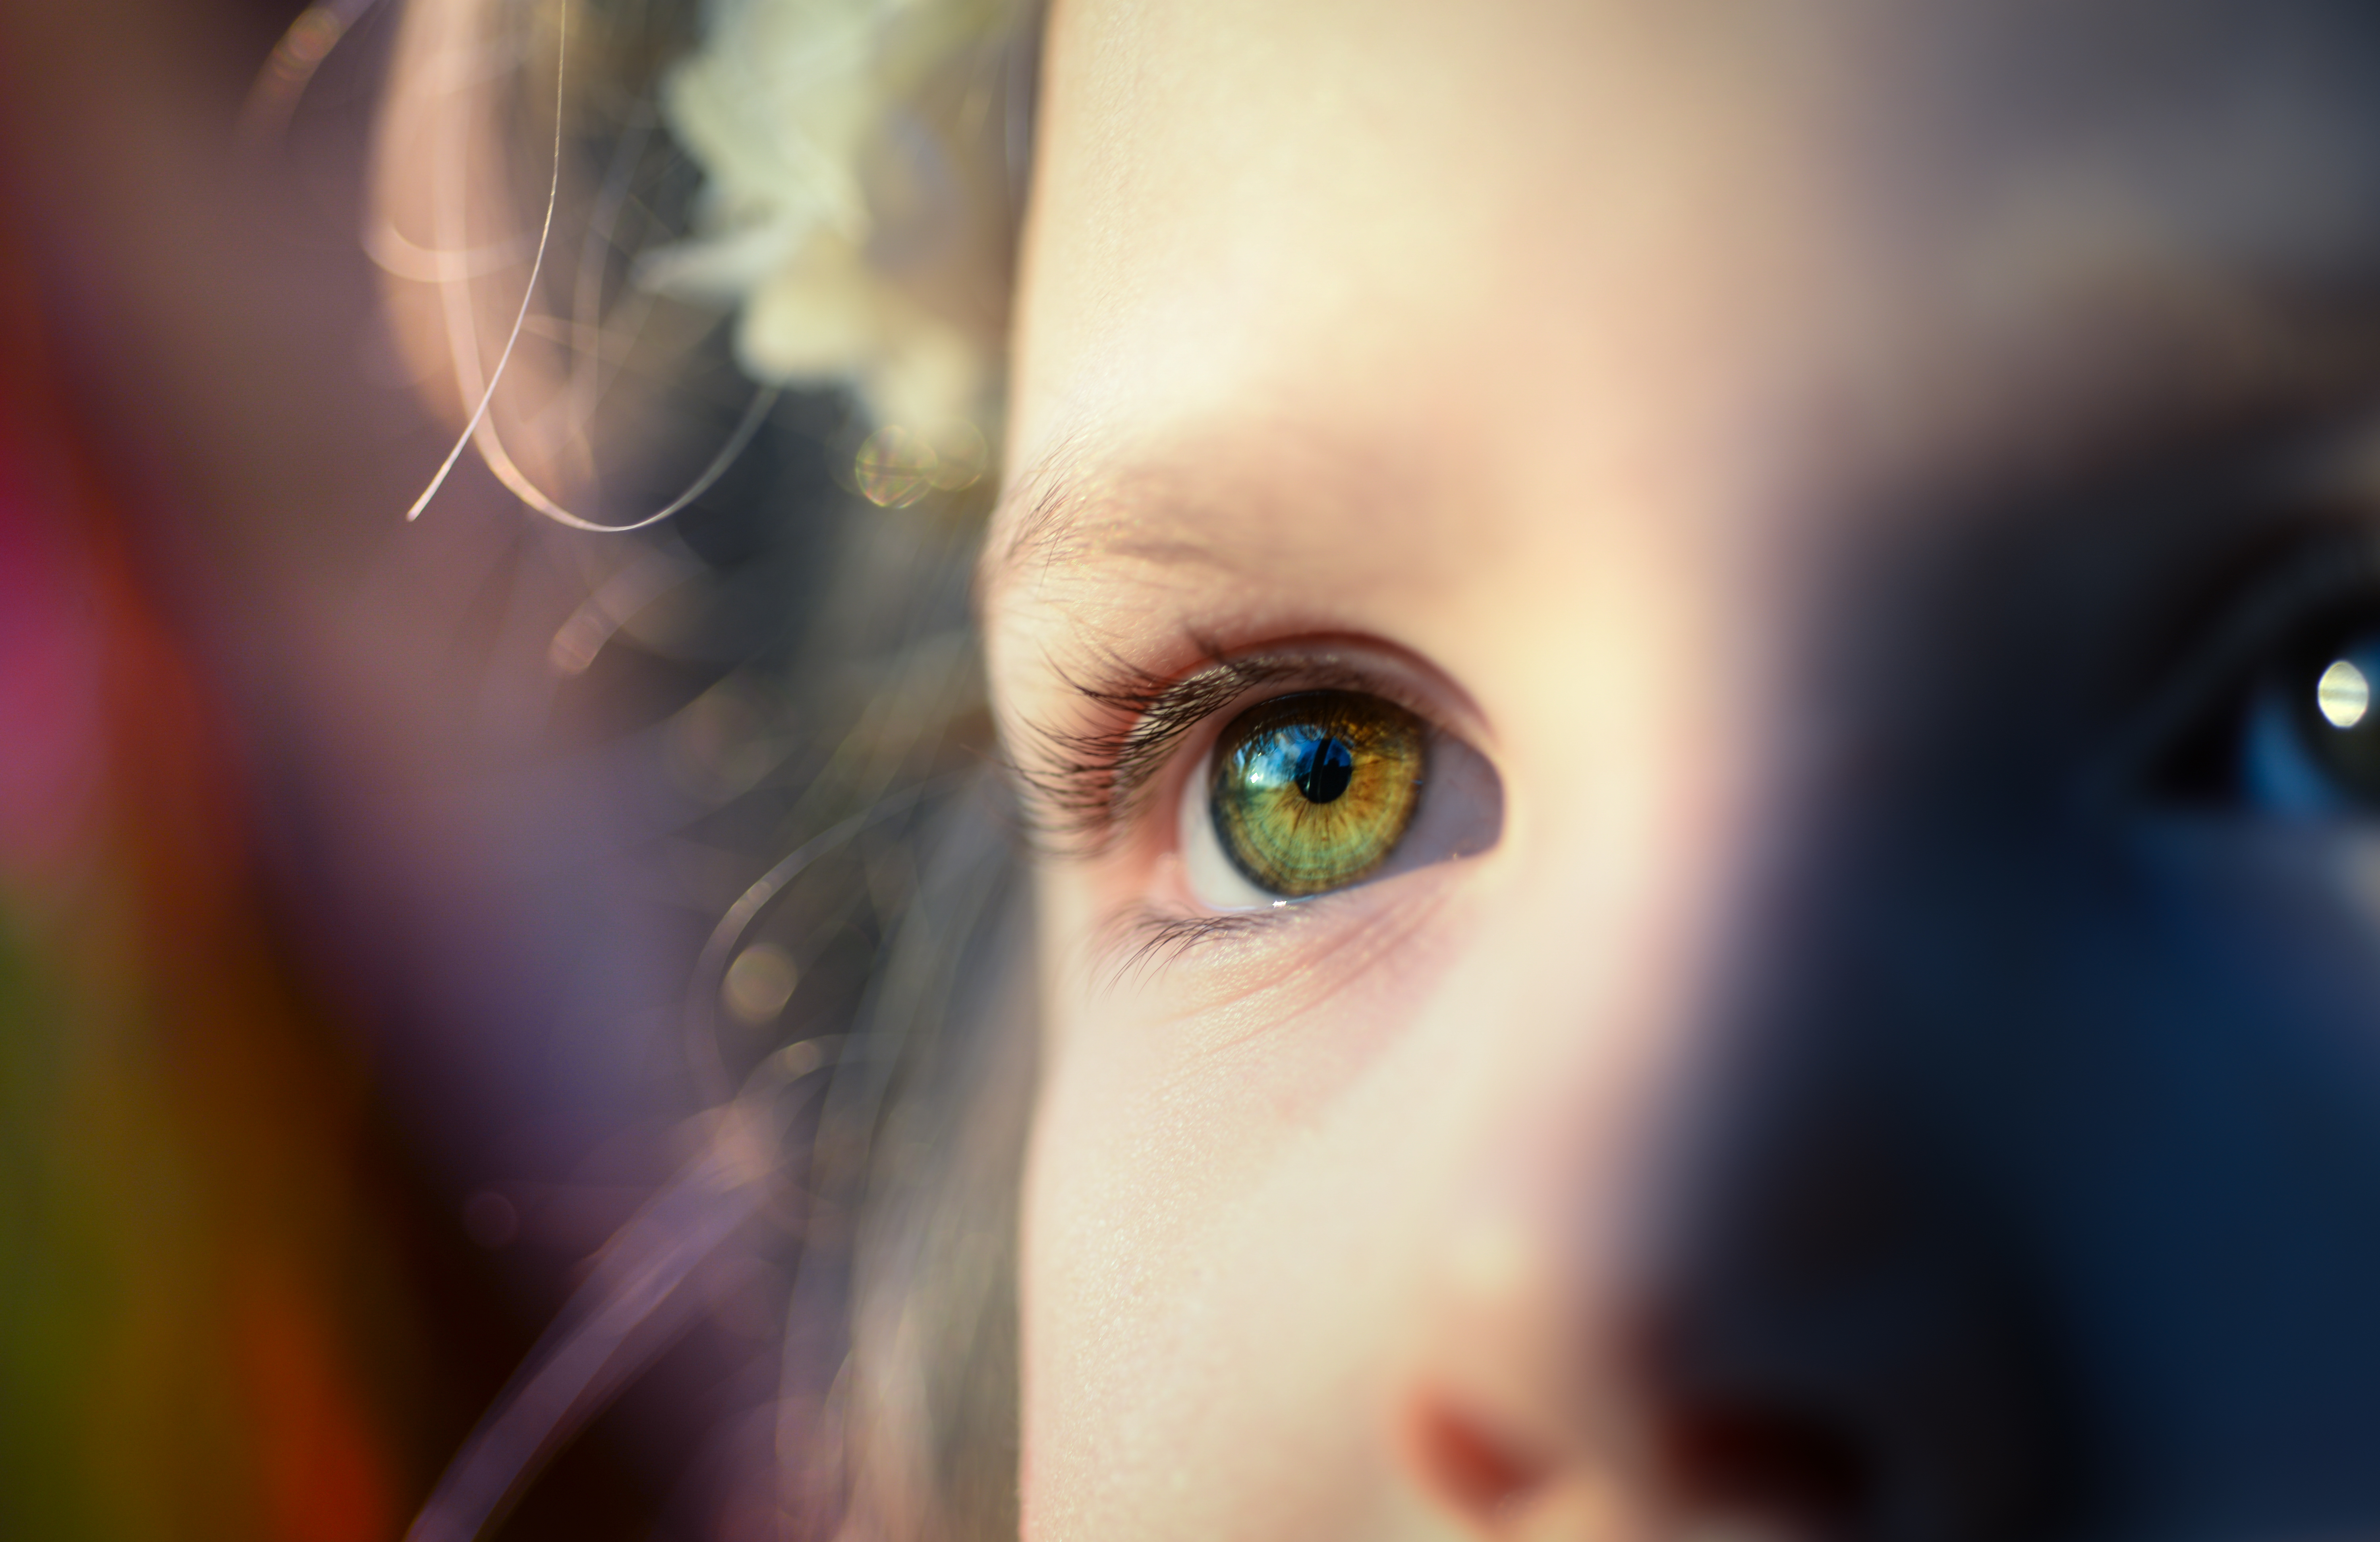 Telltale signs: How to tell if your child is growing up to